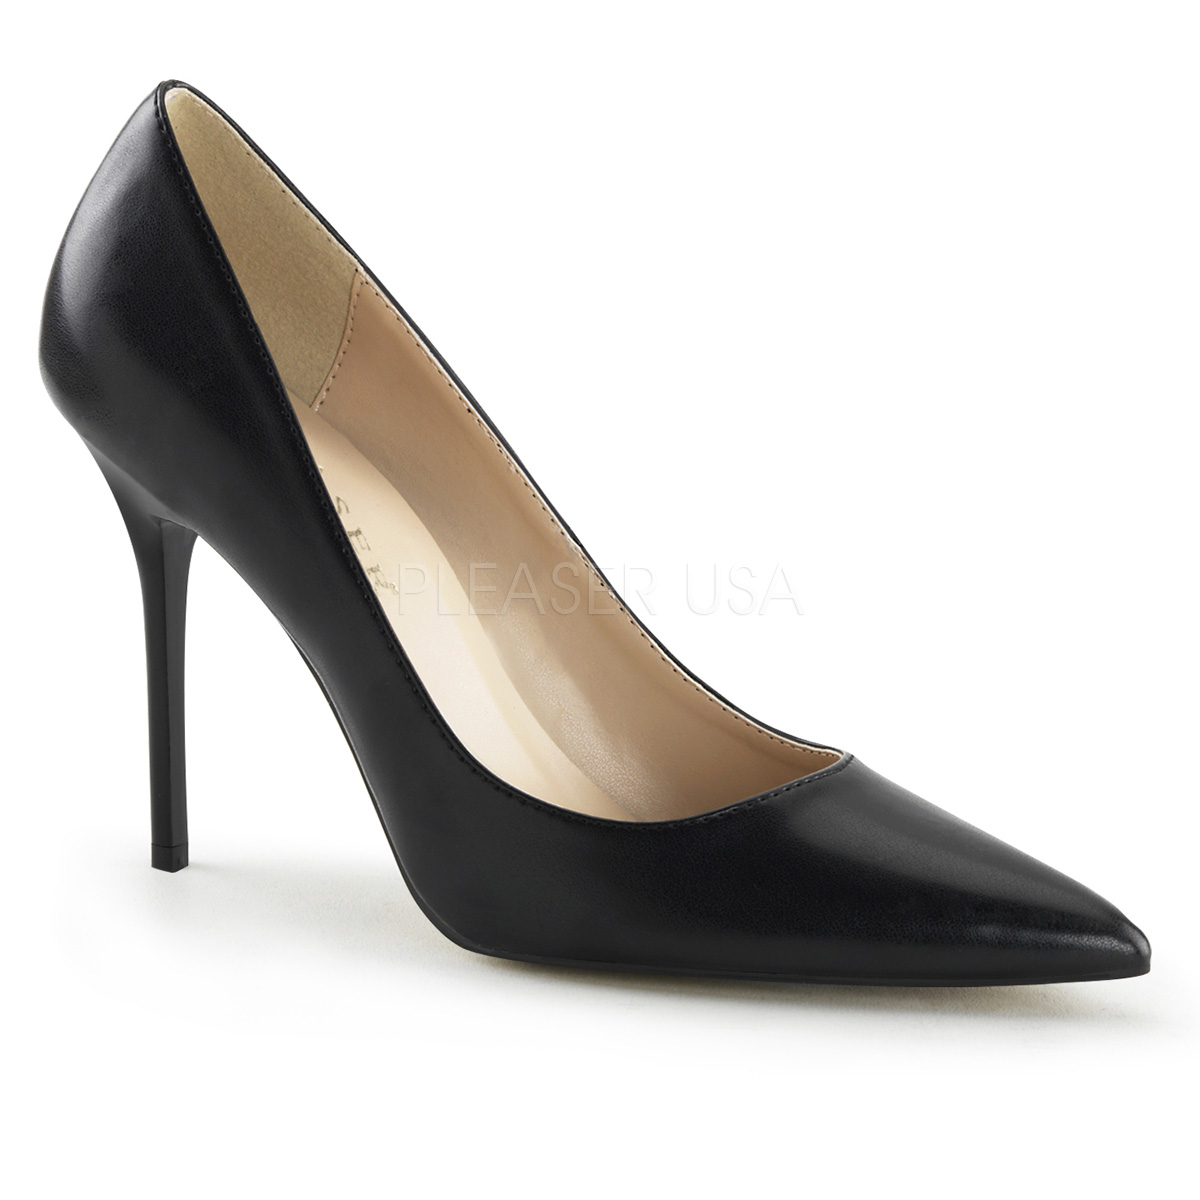 4 Inch Stiletto Heel Pointed Toe Pump